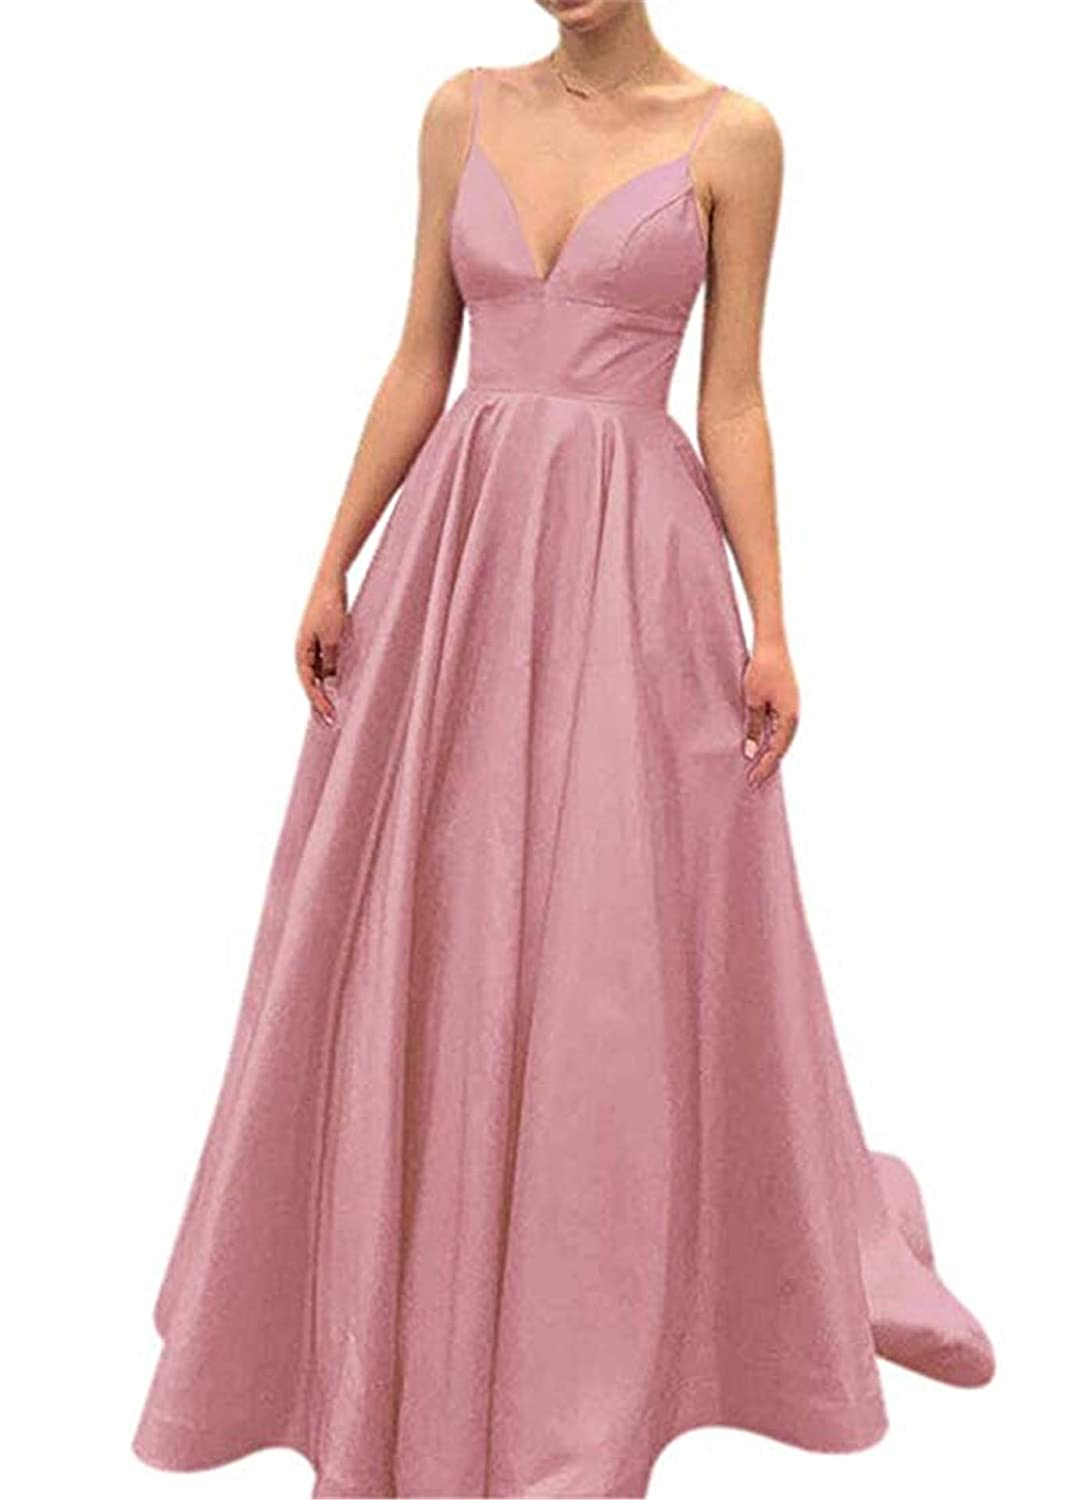 bluesh QiJunGe V Neck Evening Party Gown A Line Spaghetti Strap Prom Dress with Pocket